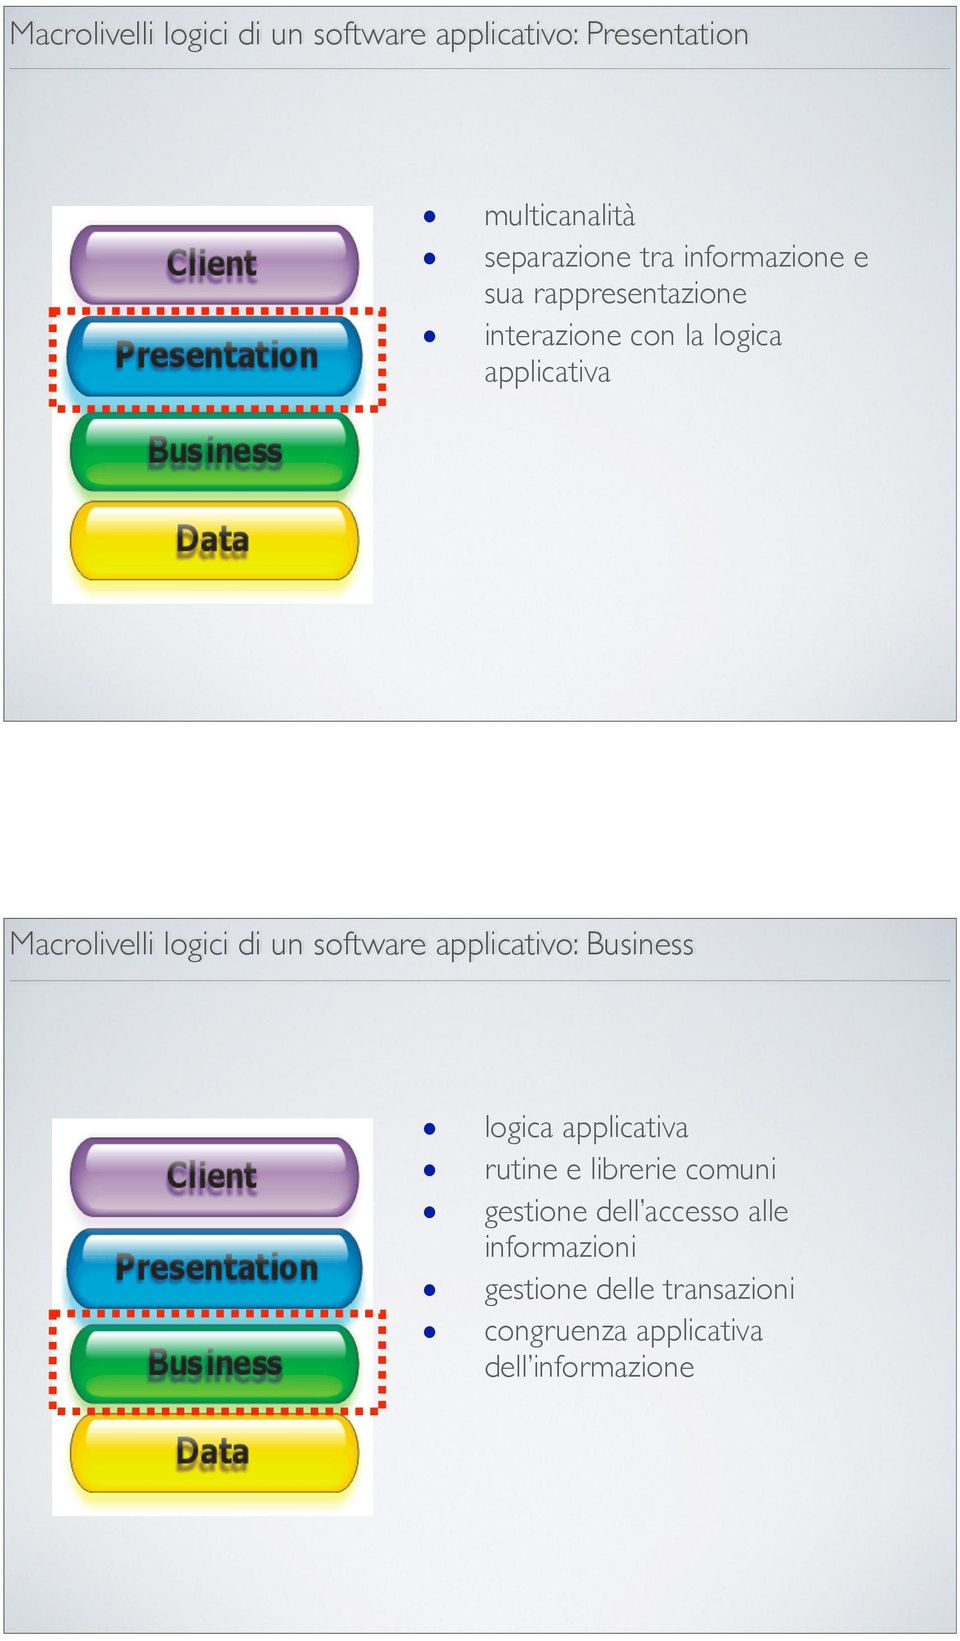 di un software applicativo: Business logica applicativa rutine e librerie comuni gestione